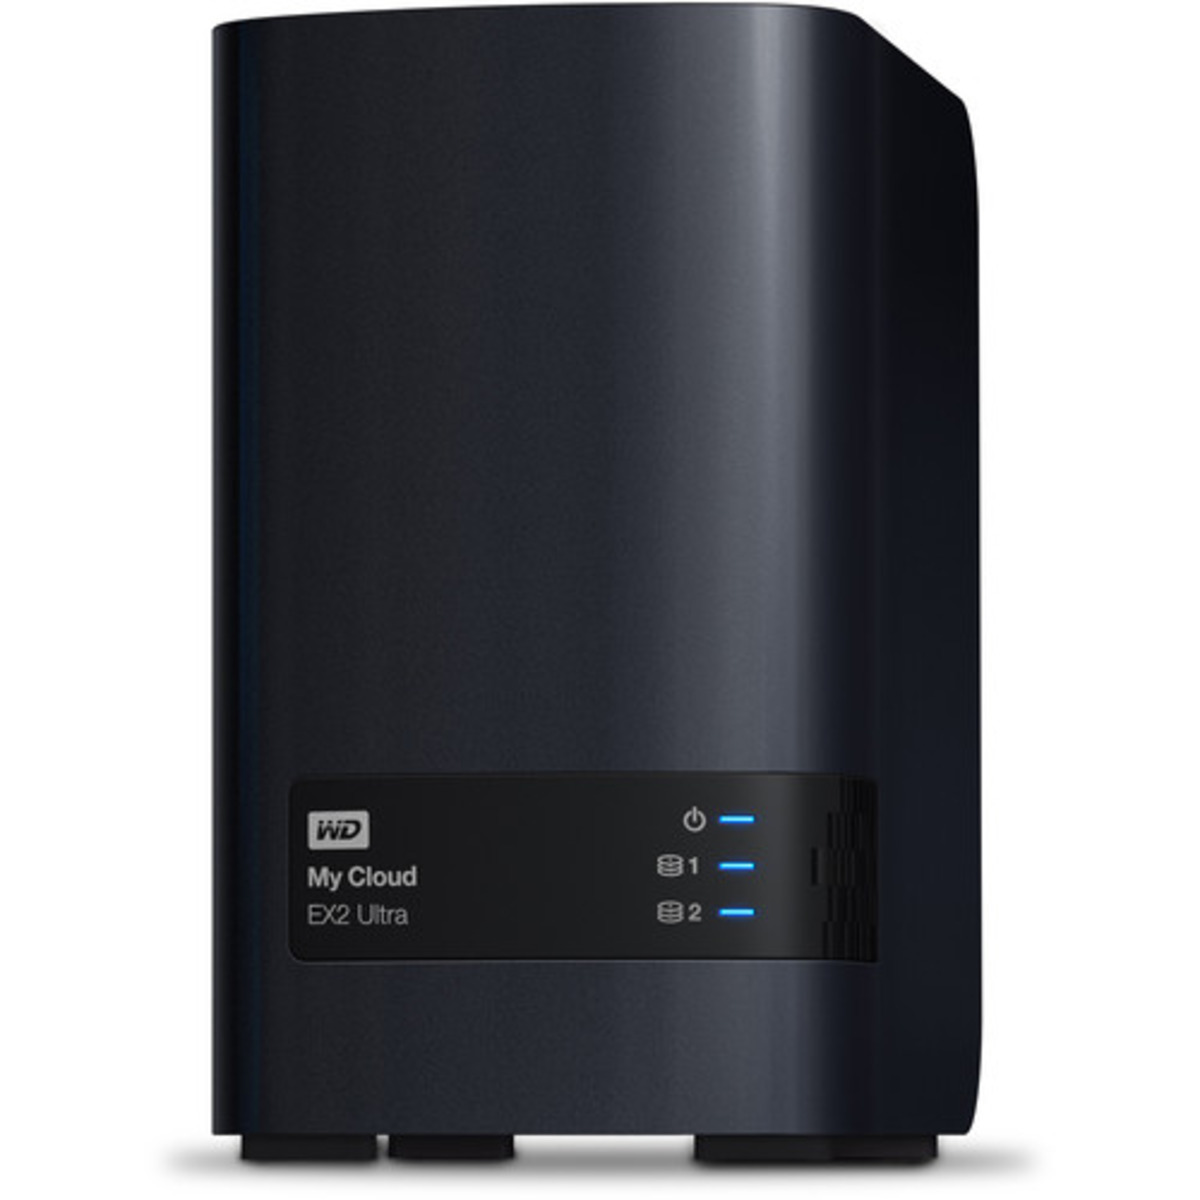 buy $379 Western Digital My Cloud EX2 Ultra 4tb Desktop NAS - Network Attached Storage Device 2x2000gb Western Digital Red NAS WD20EFRX 3.5 IntelliPower SATA 6Gb/s HDD NAS Class Drives Installed - Burn-In Tested - nas headquarters buy network attached storage server device das new sale raid-5 free shipping usa My Cloud EX2 Ultra